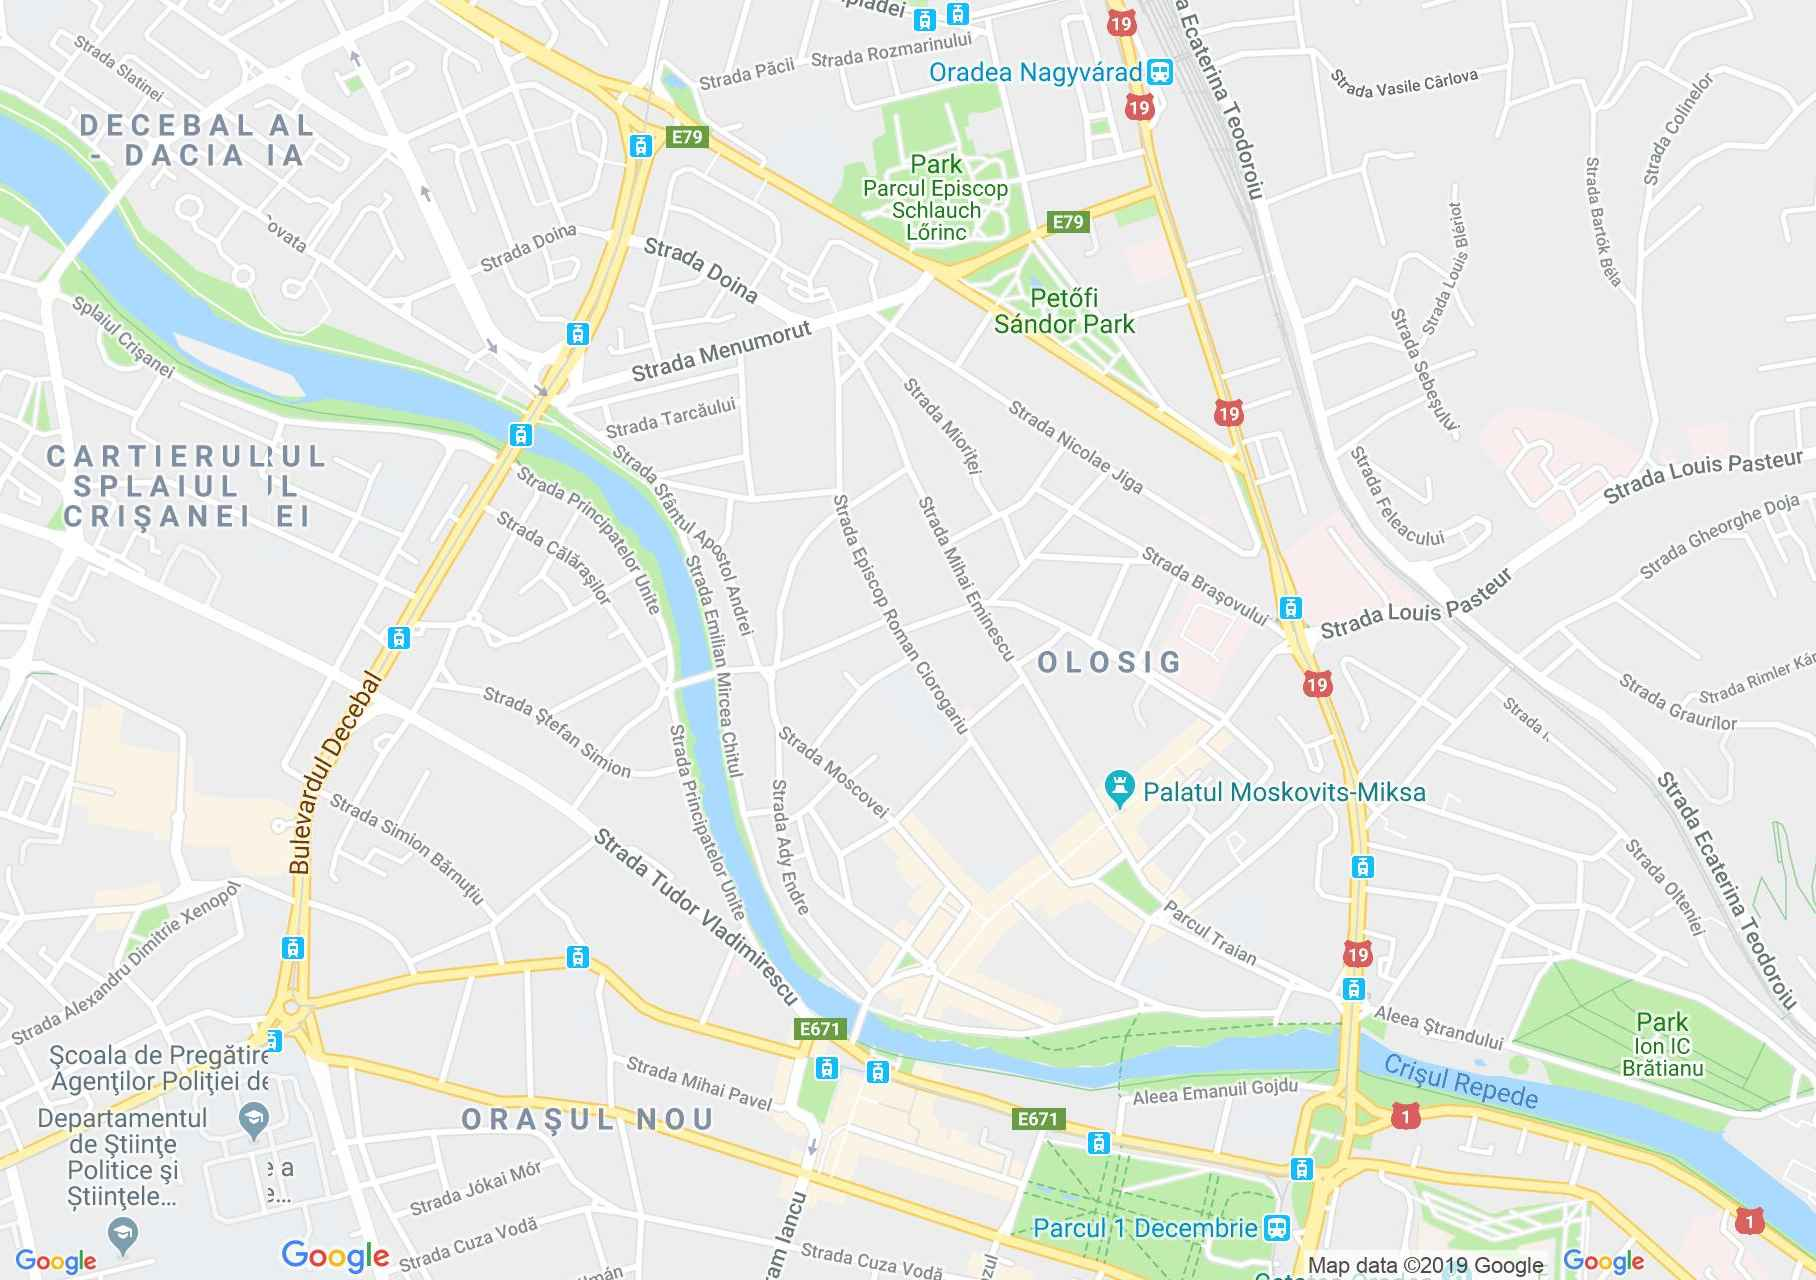 Map of Oradea: The Astoria Hotel